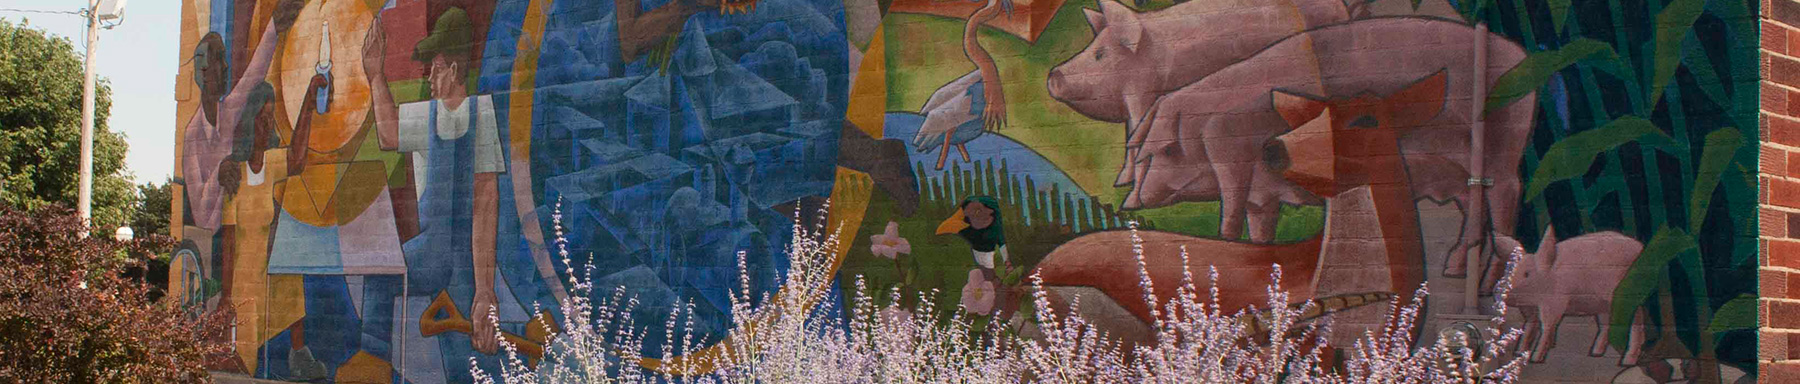 Railway Express Mural in Grinnell